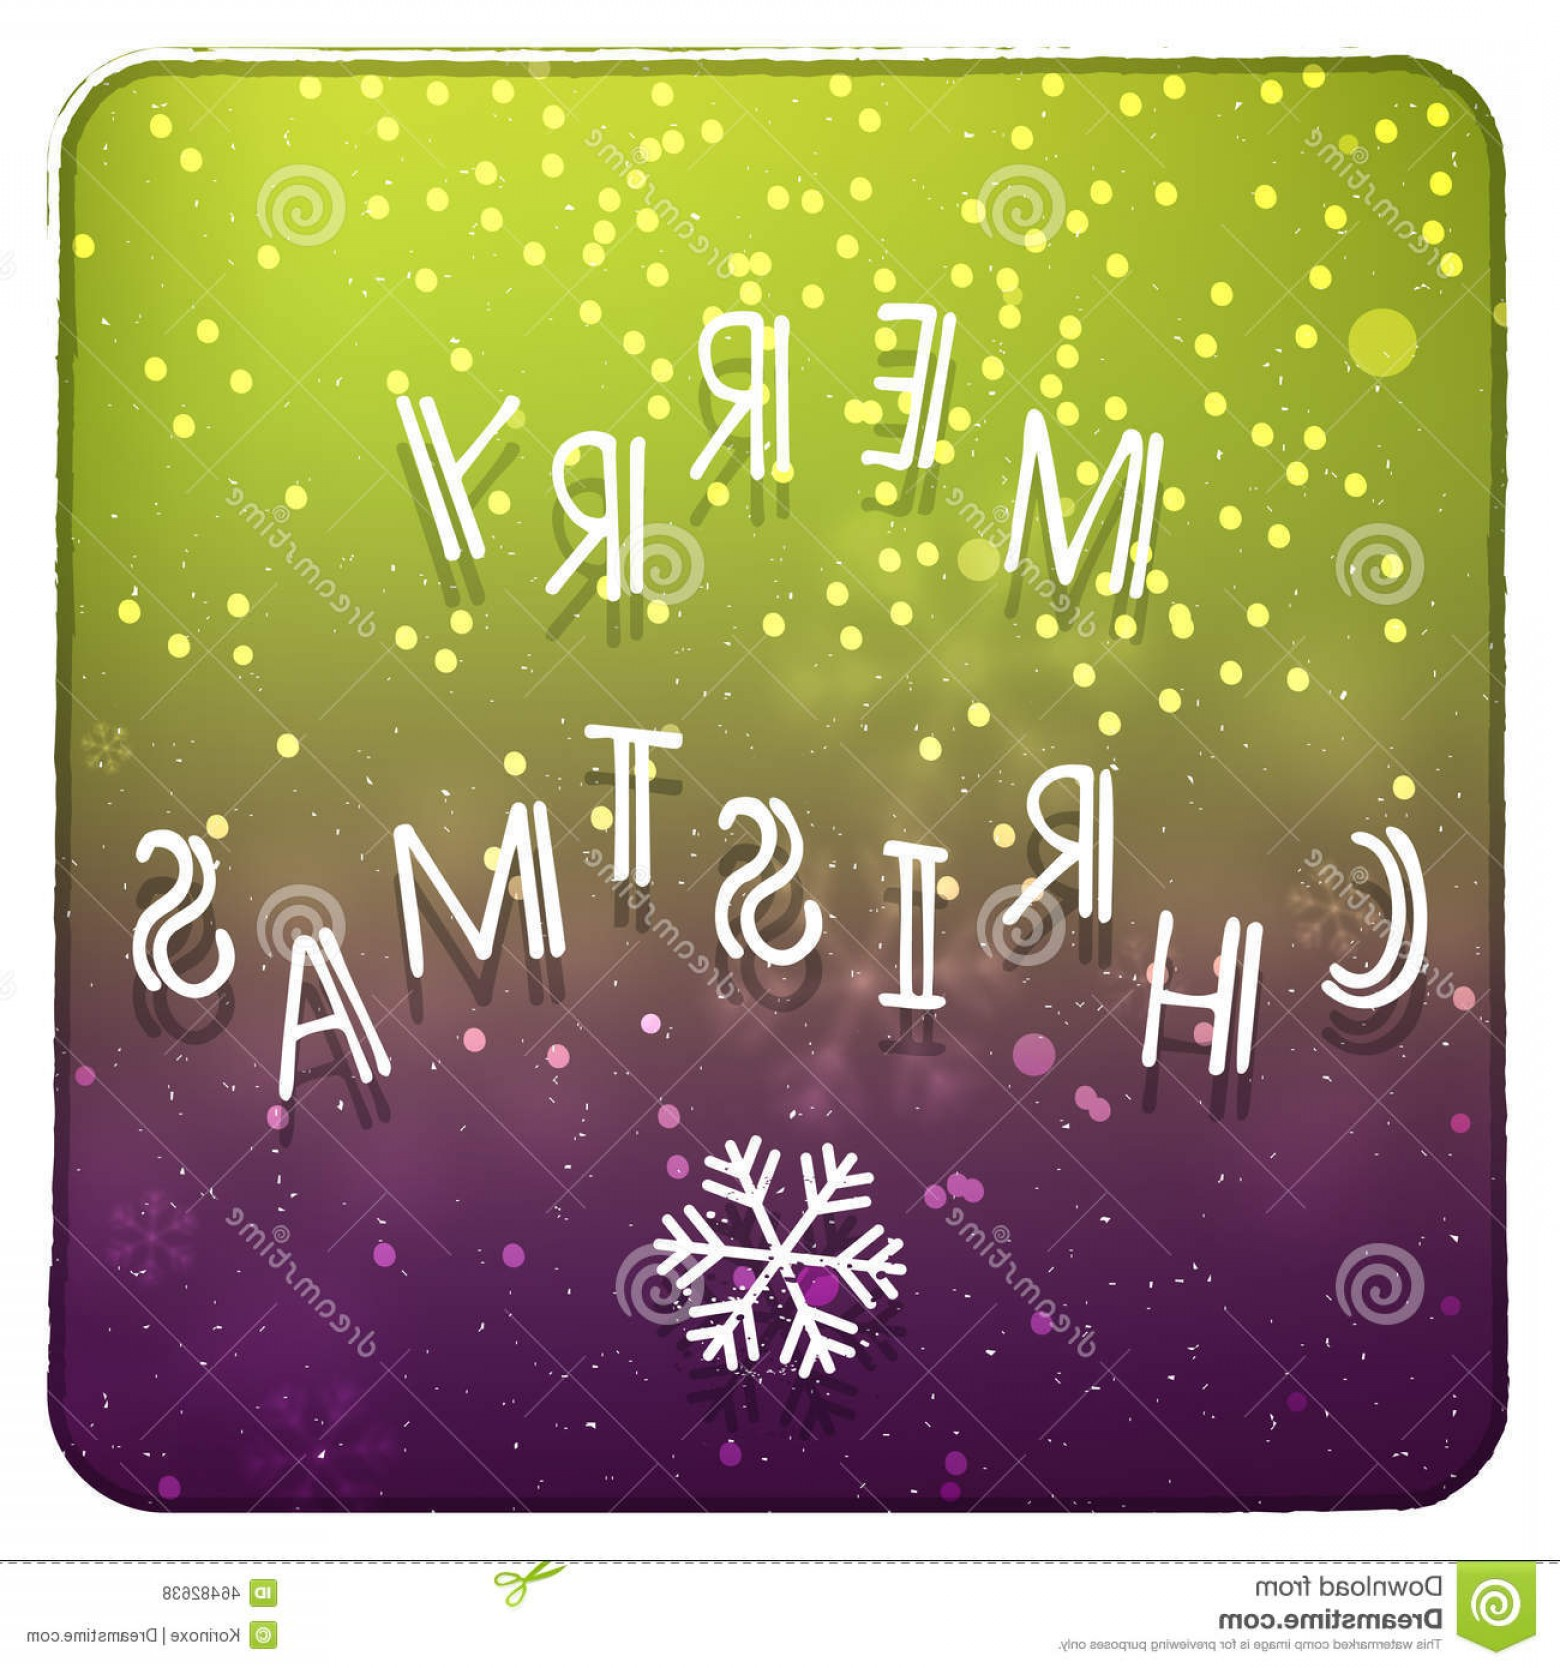 Purple Green And White Vector: Stock Illustration Merry Christmas Purple Green Invitation Card Vector Hand Drawn White Letters Glitter Snowflake Image